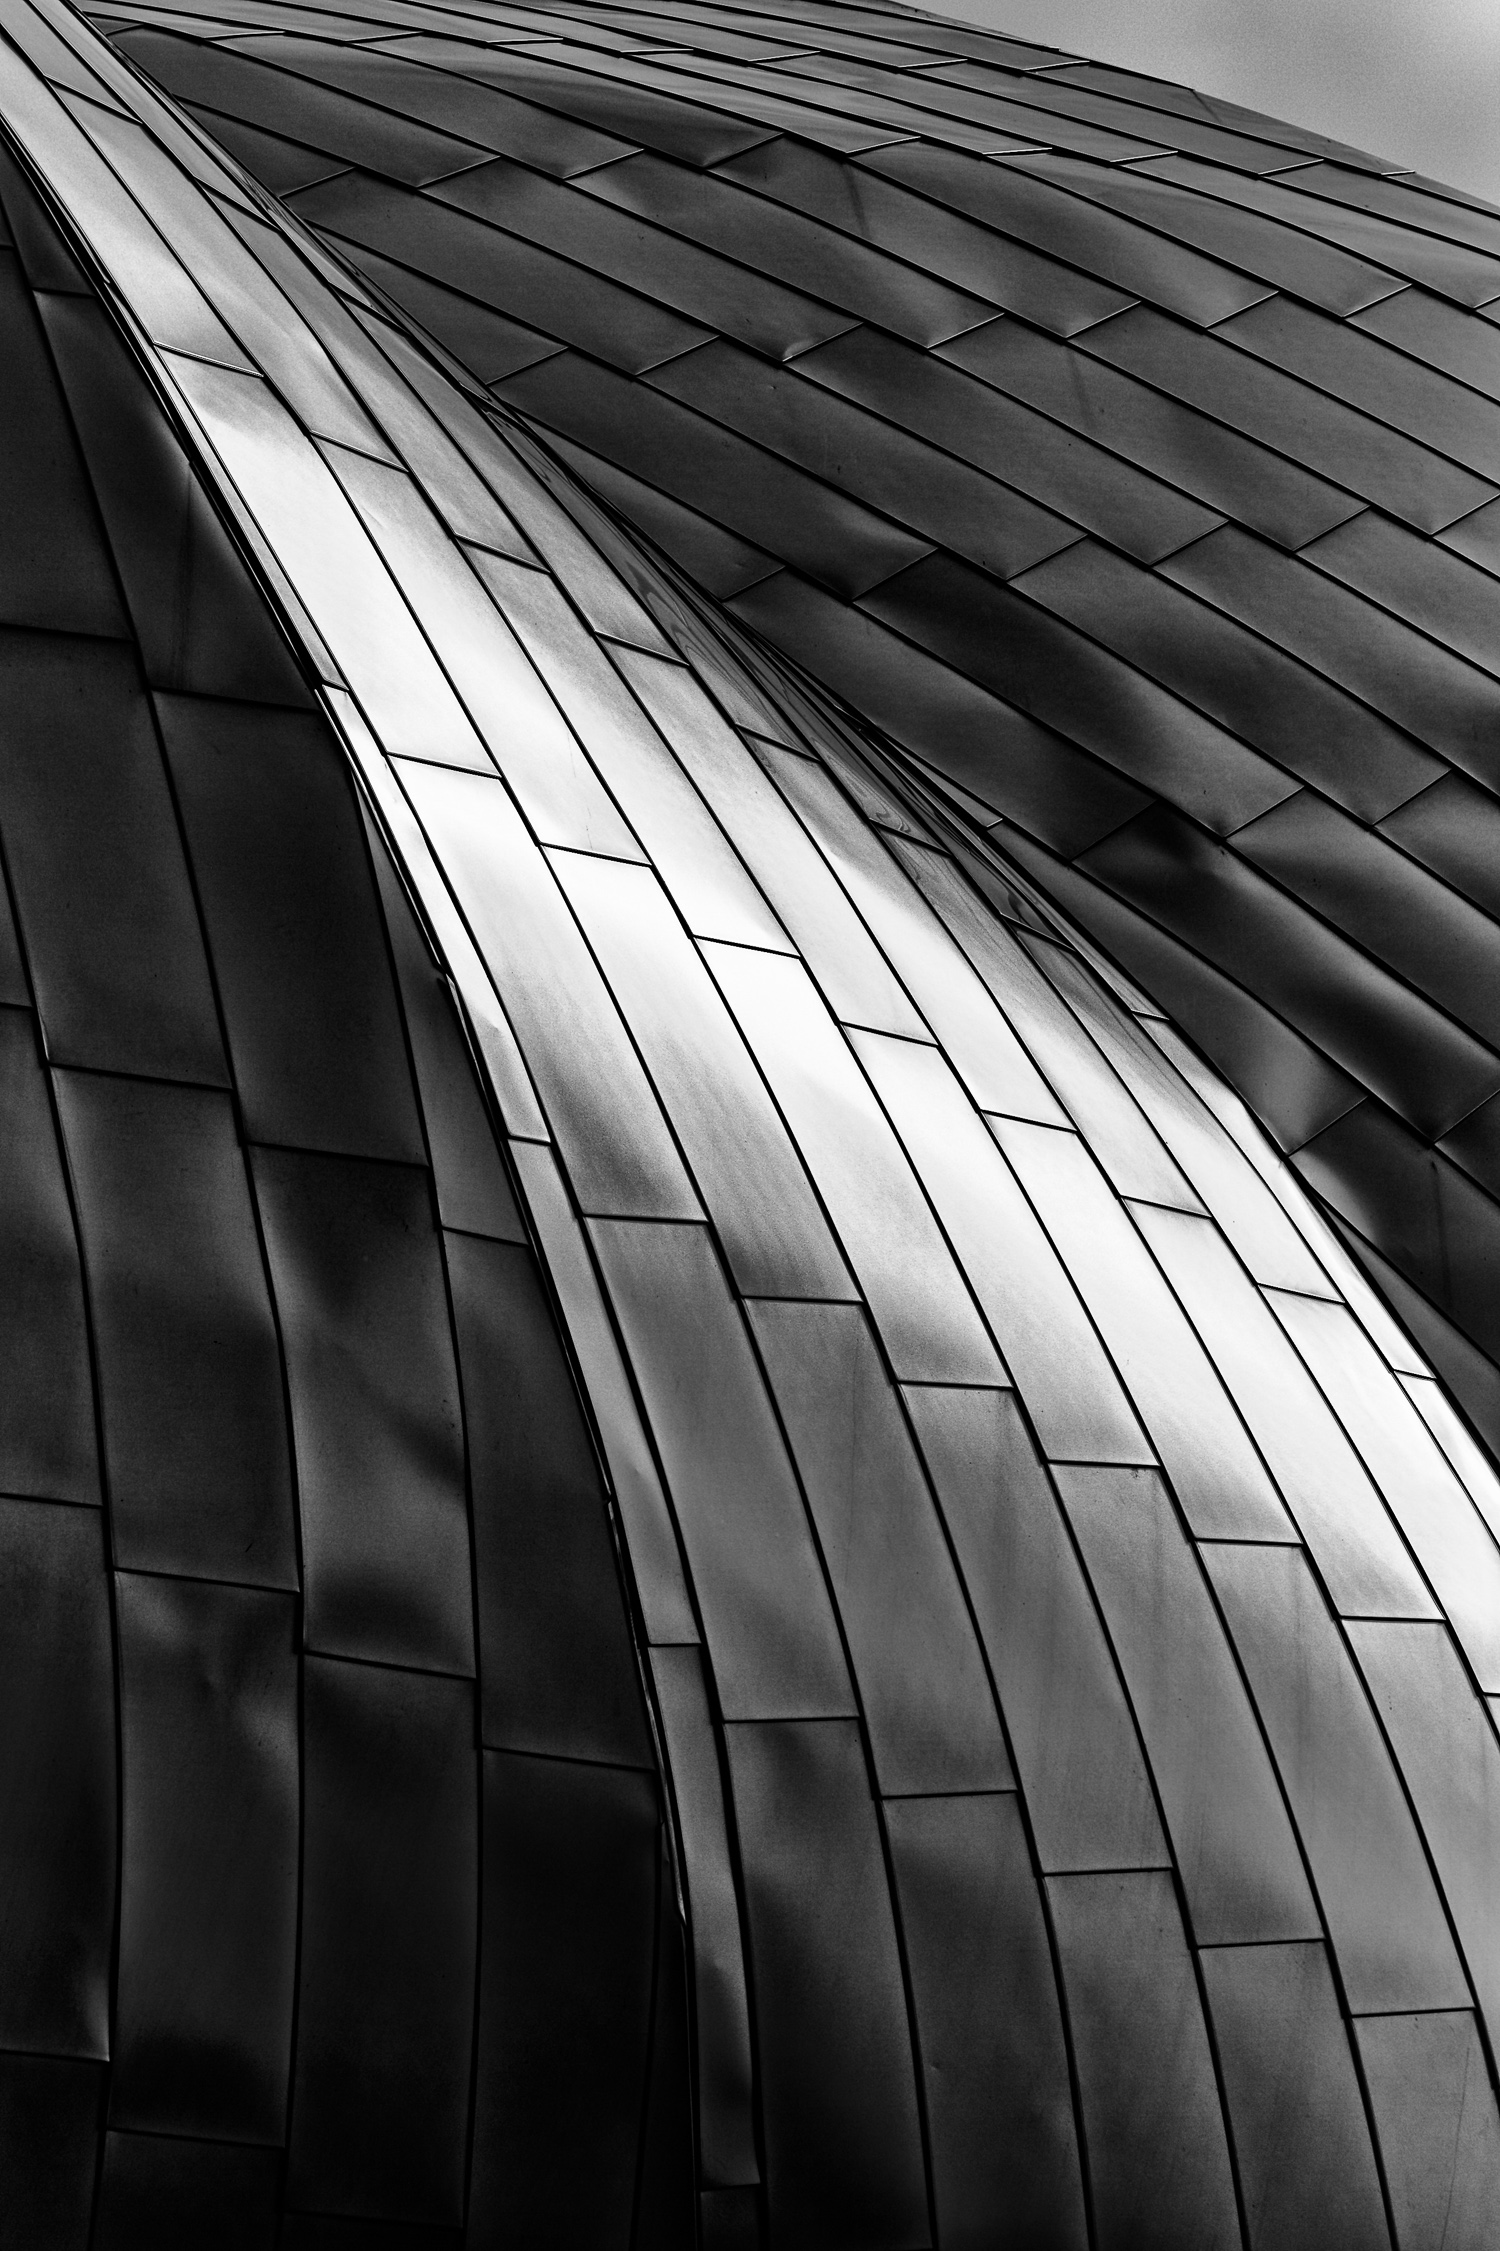 Stainless Wave